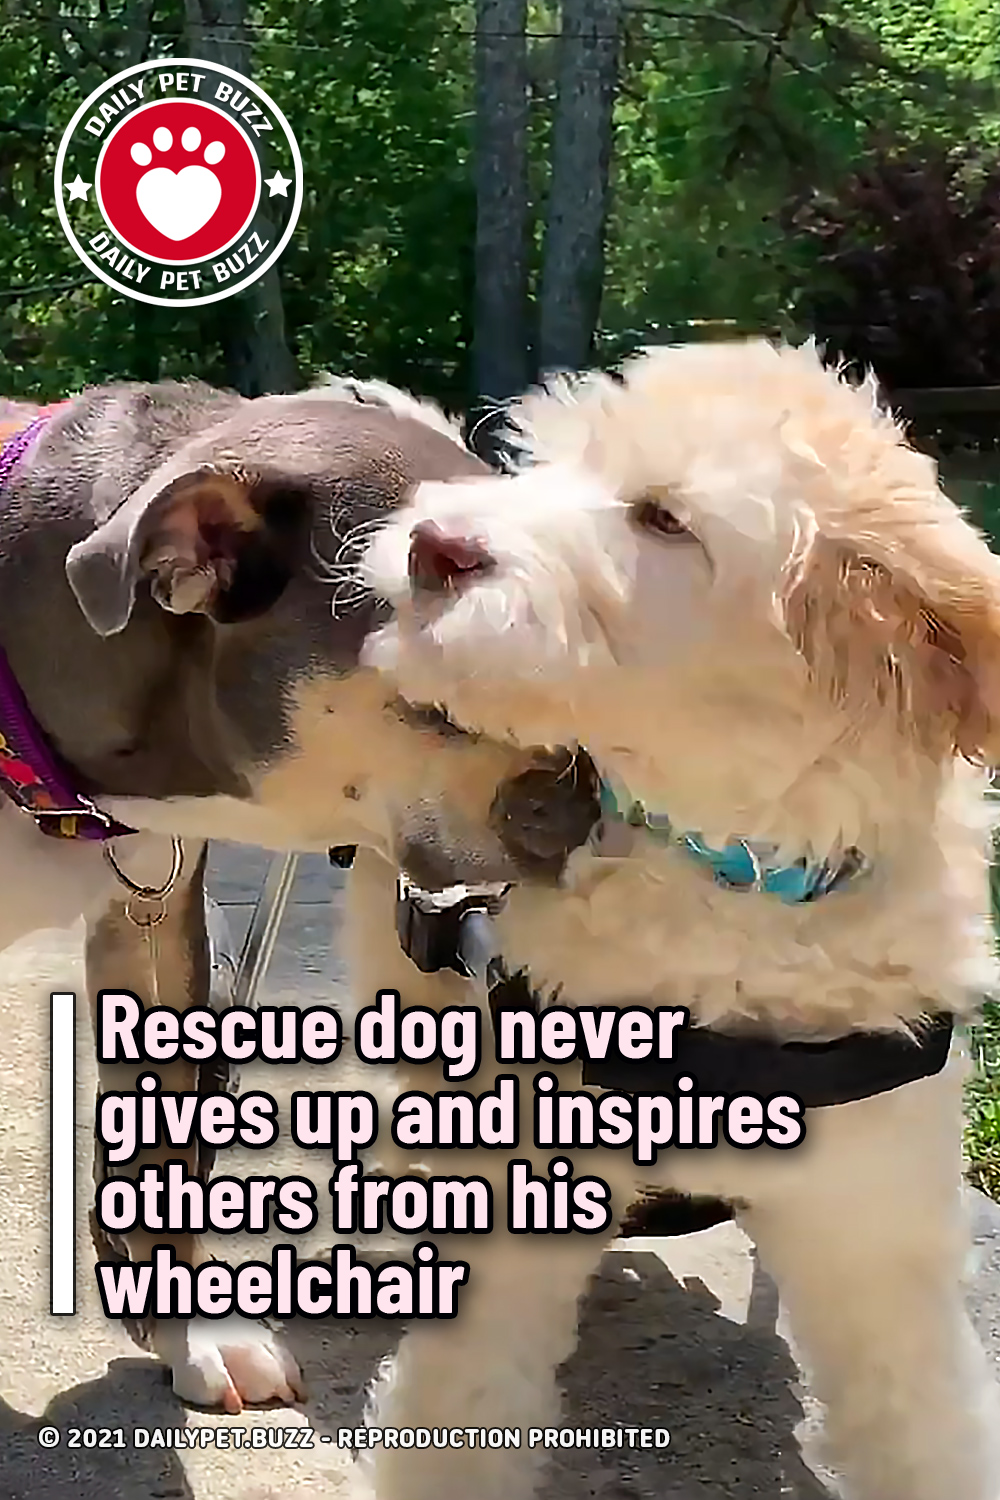 Rescue dog never gives up and inspires others from his wheelchair